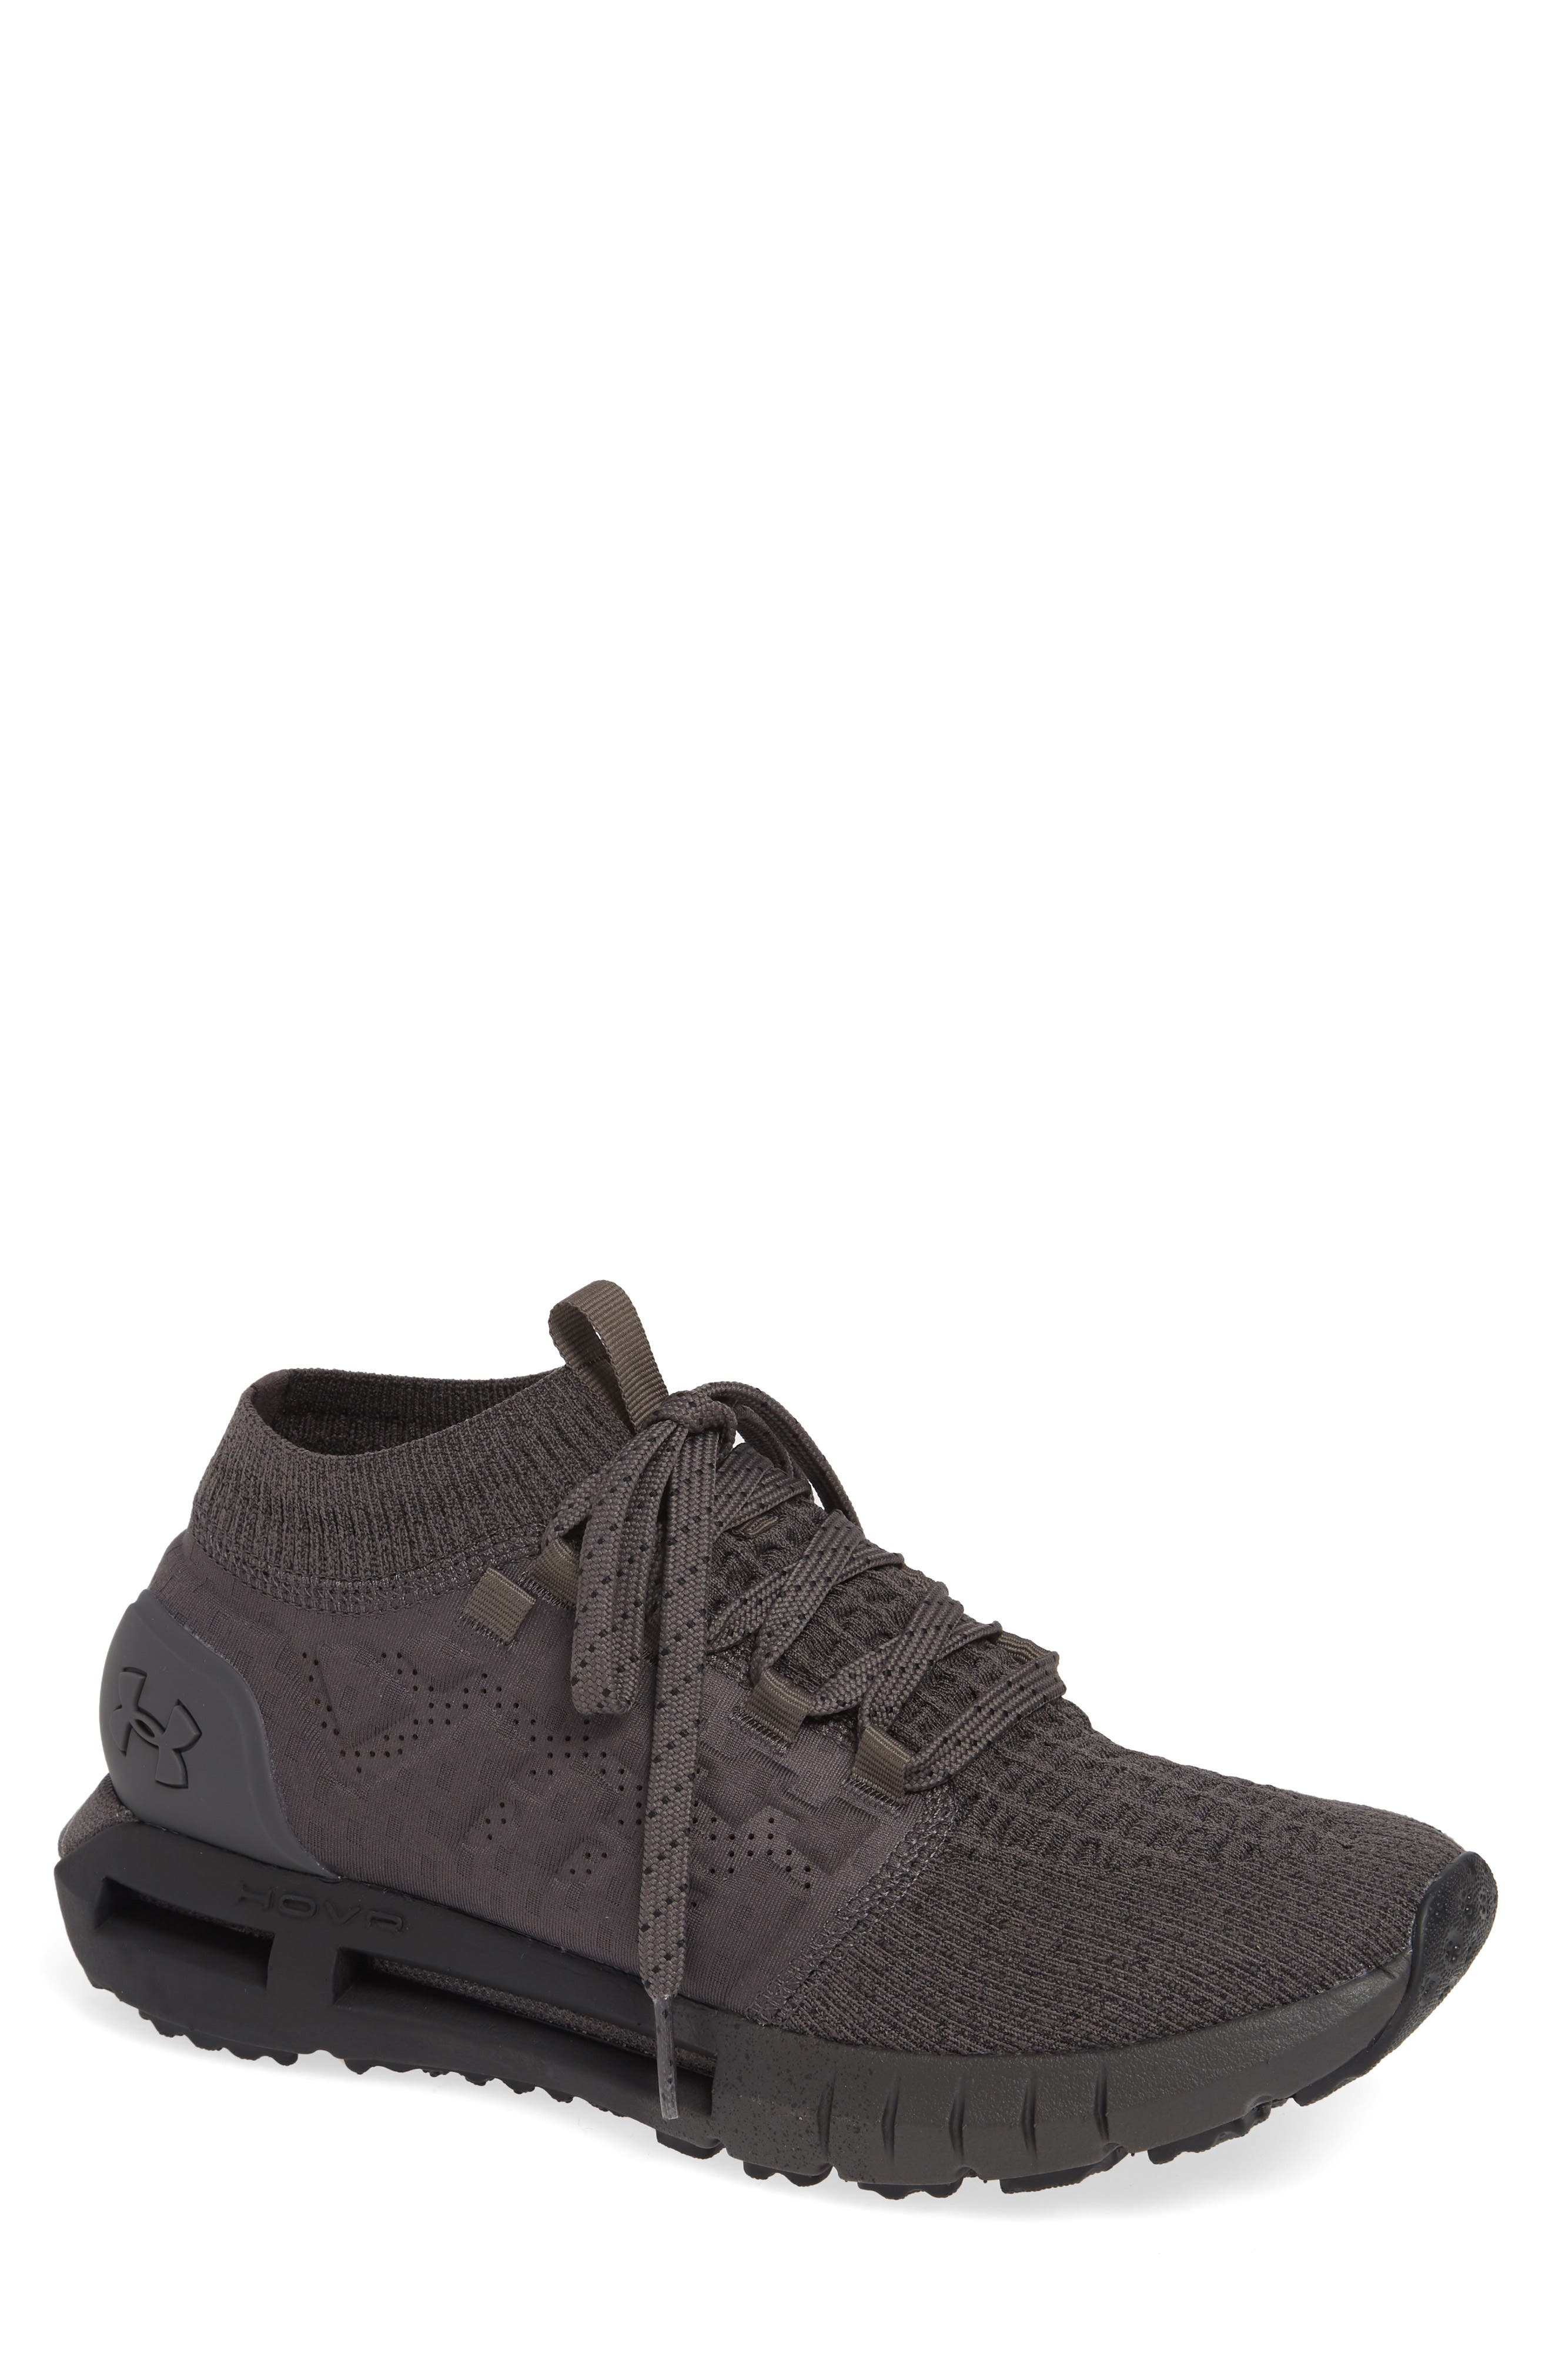 UNDER ARMOUR Men'S Hovr Phantom Running Sneakers From Finish Line in Charcoal / Black / Charco